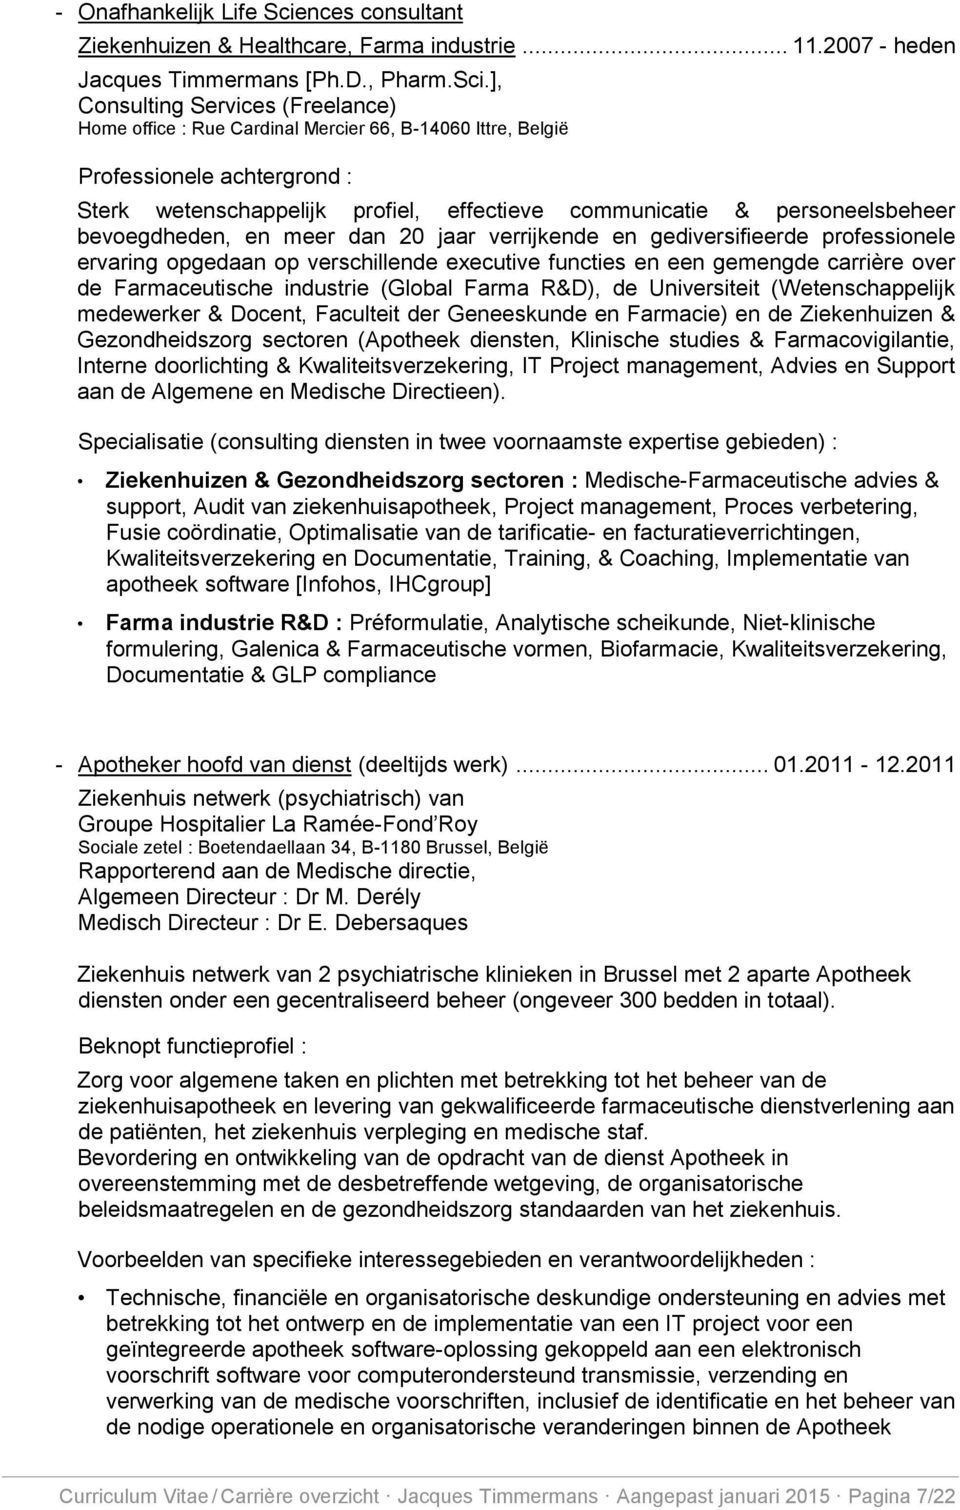 ], Consulting Services (Freelance) Home office : Rue Cardinal Mercier 66, B-14060 Ittre, België Professionele achtergrond : Sterk wetenschappelijk profiel, effectieve communicatie & personeelsbeheer